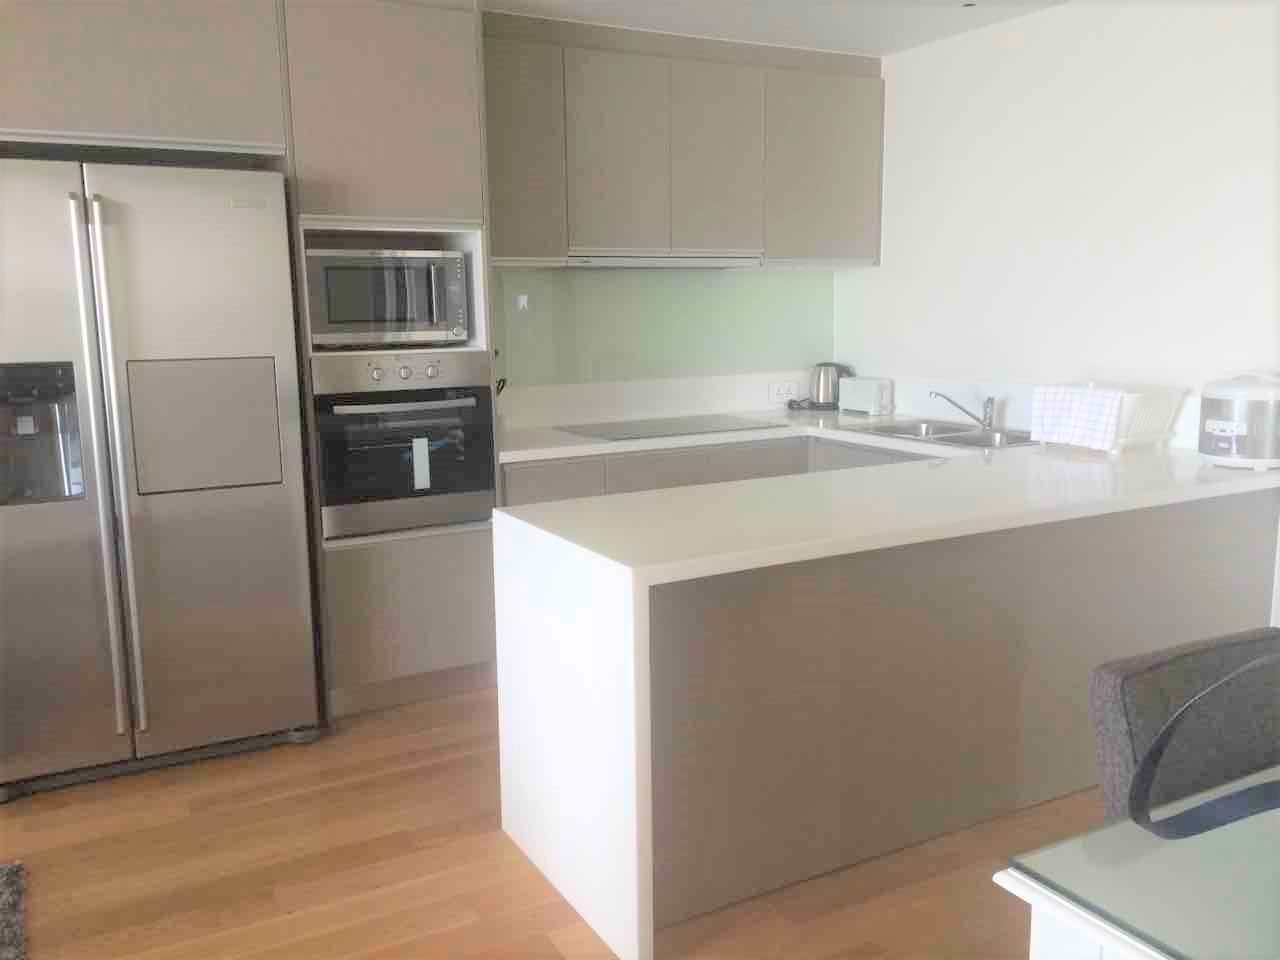 Apartment for rent D210220 (7)